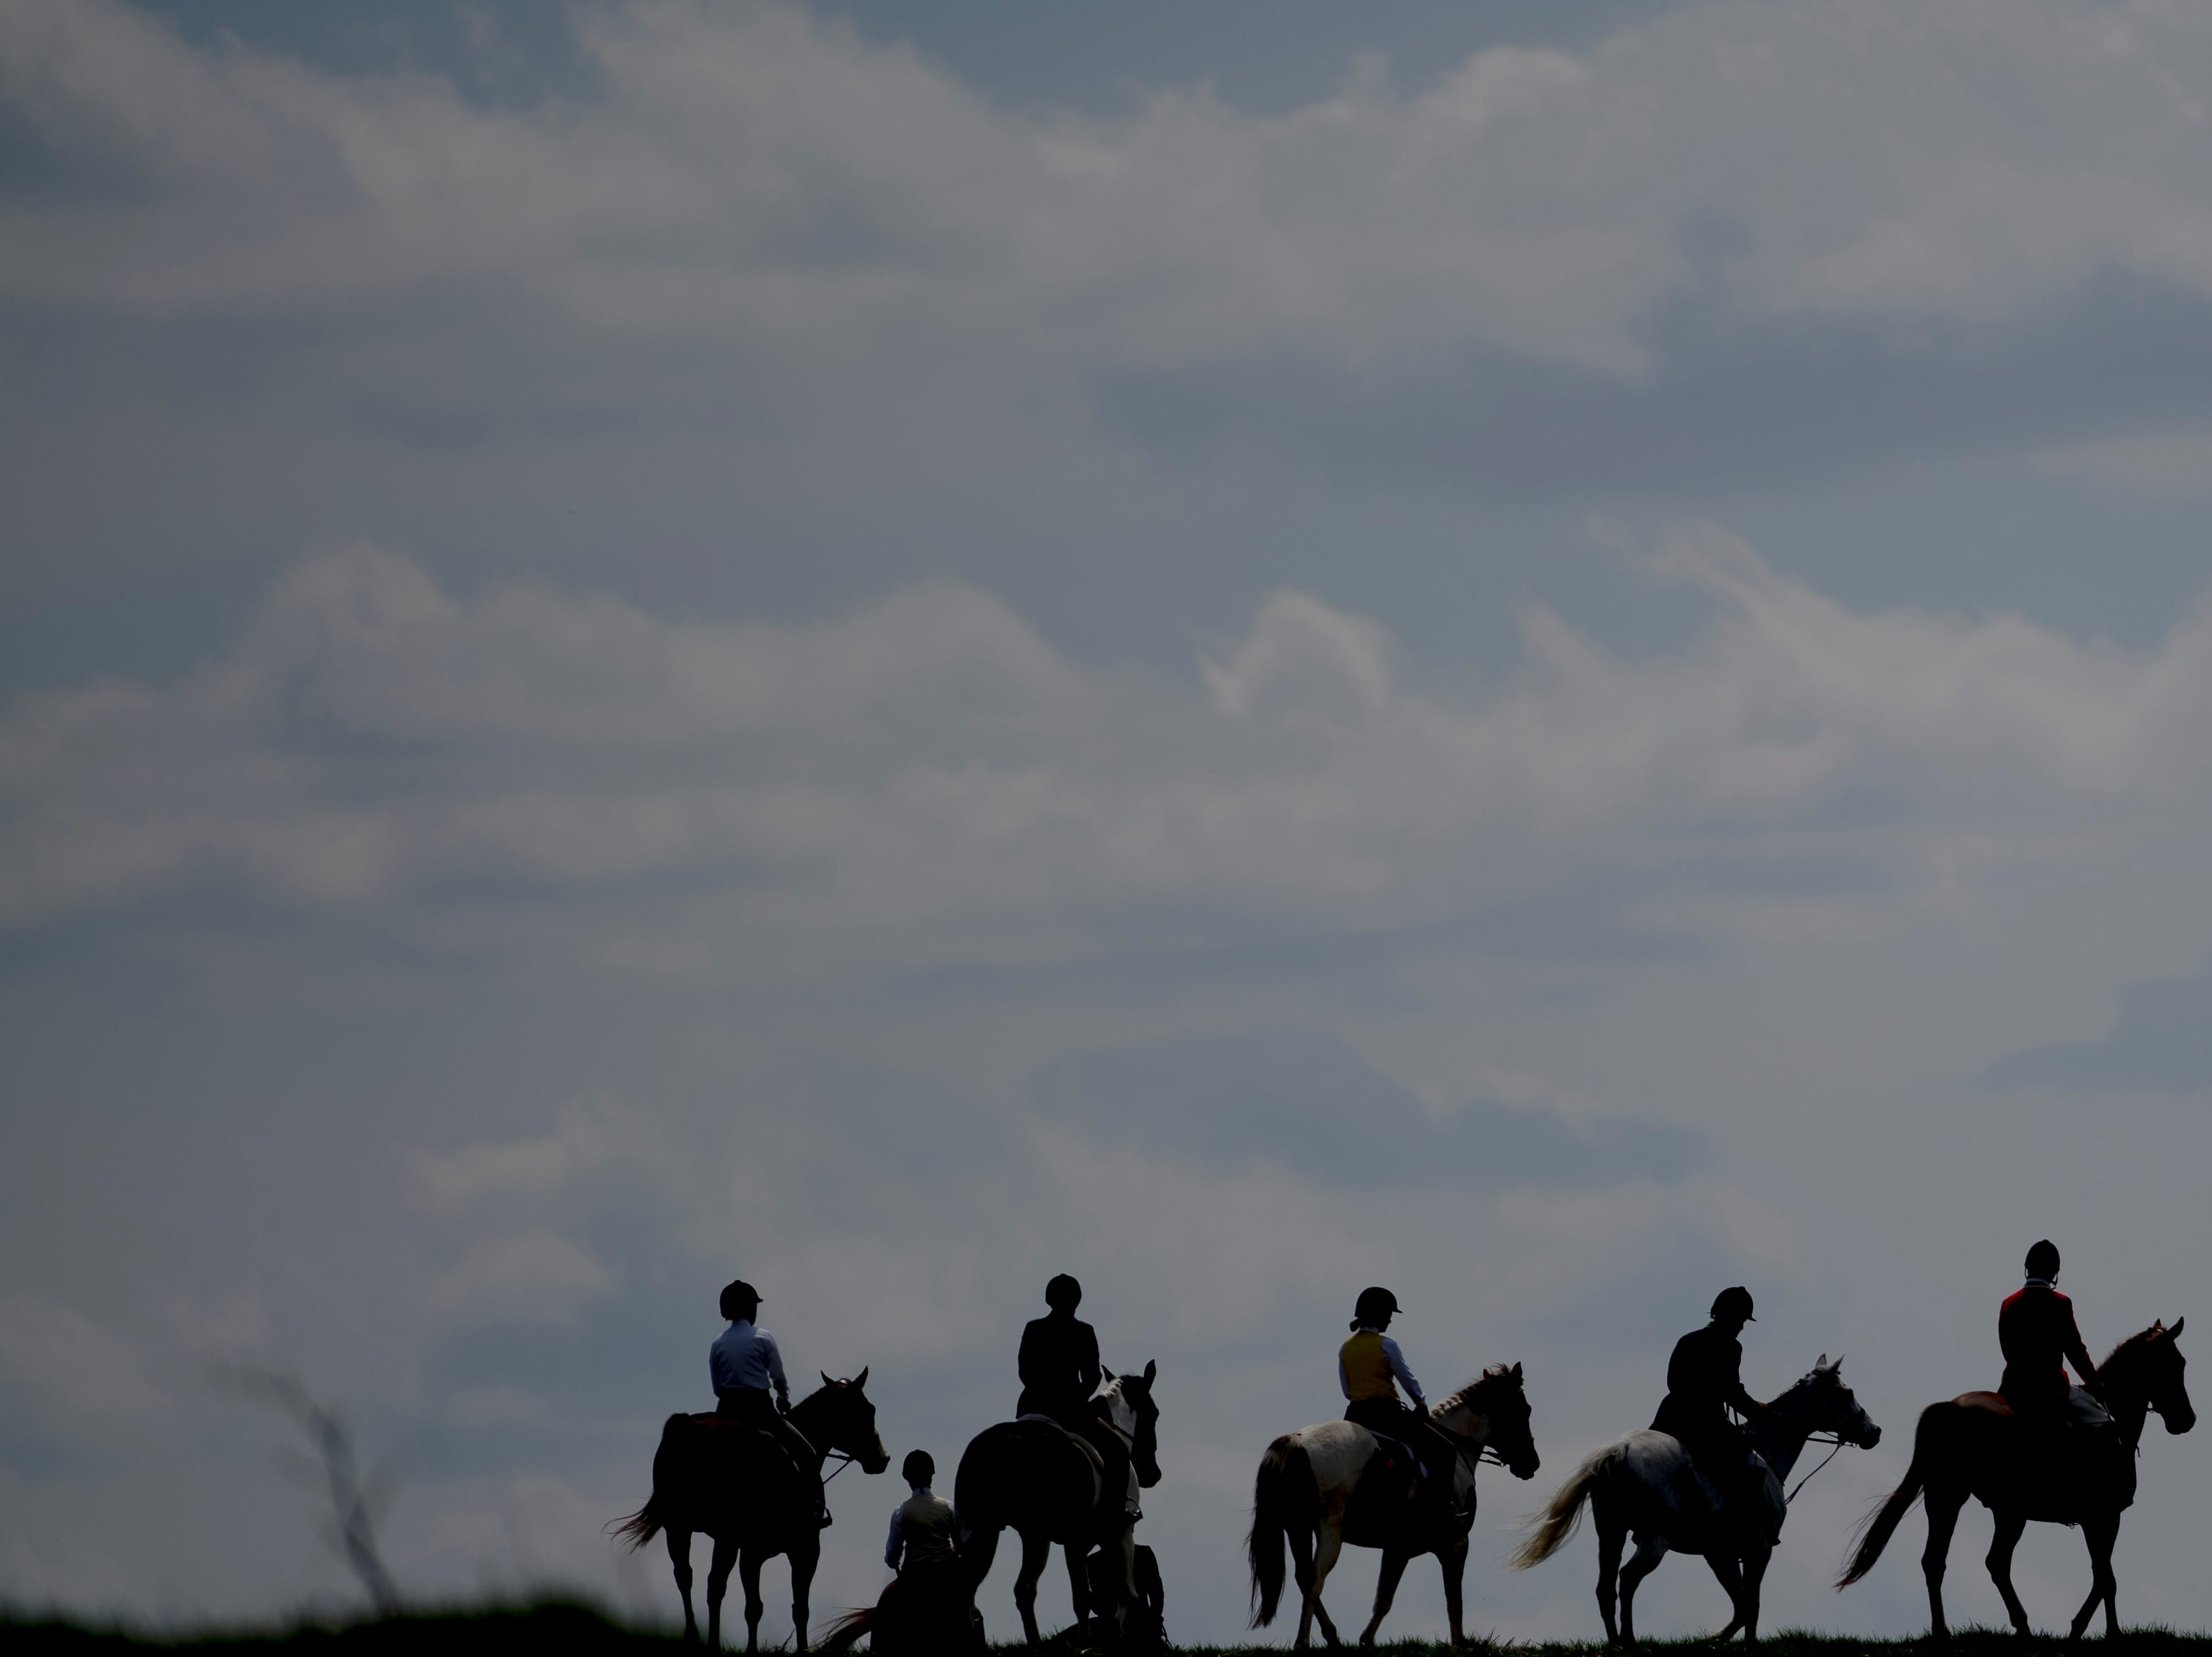 A row of hunters walk along the top of a hill during a fixture at Blackberry Ridge Farm in Greeneville, Tennessee on Saturday, March 30, 2019.